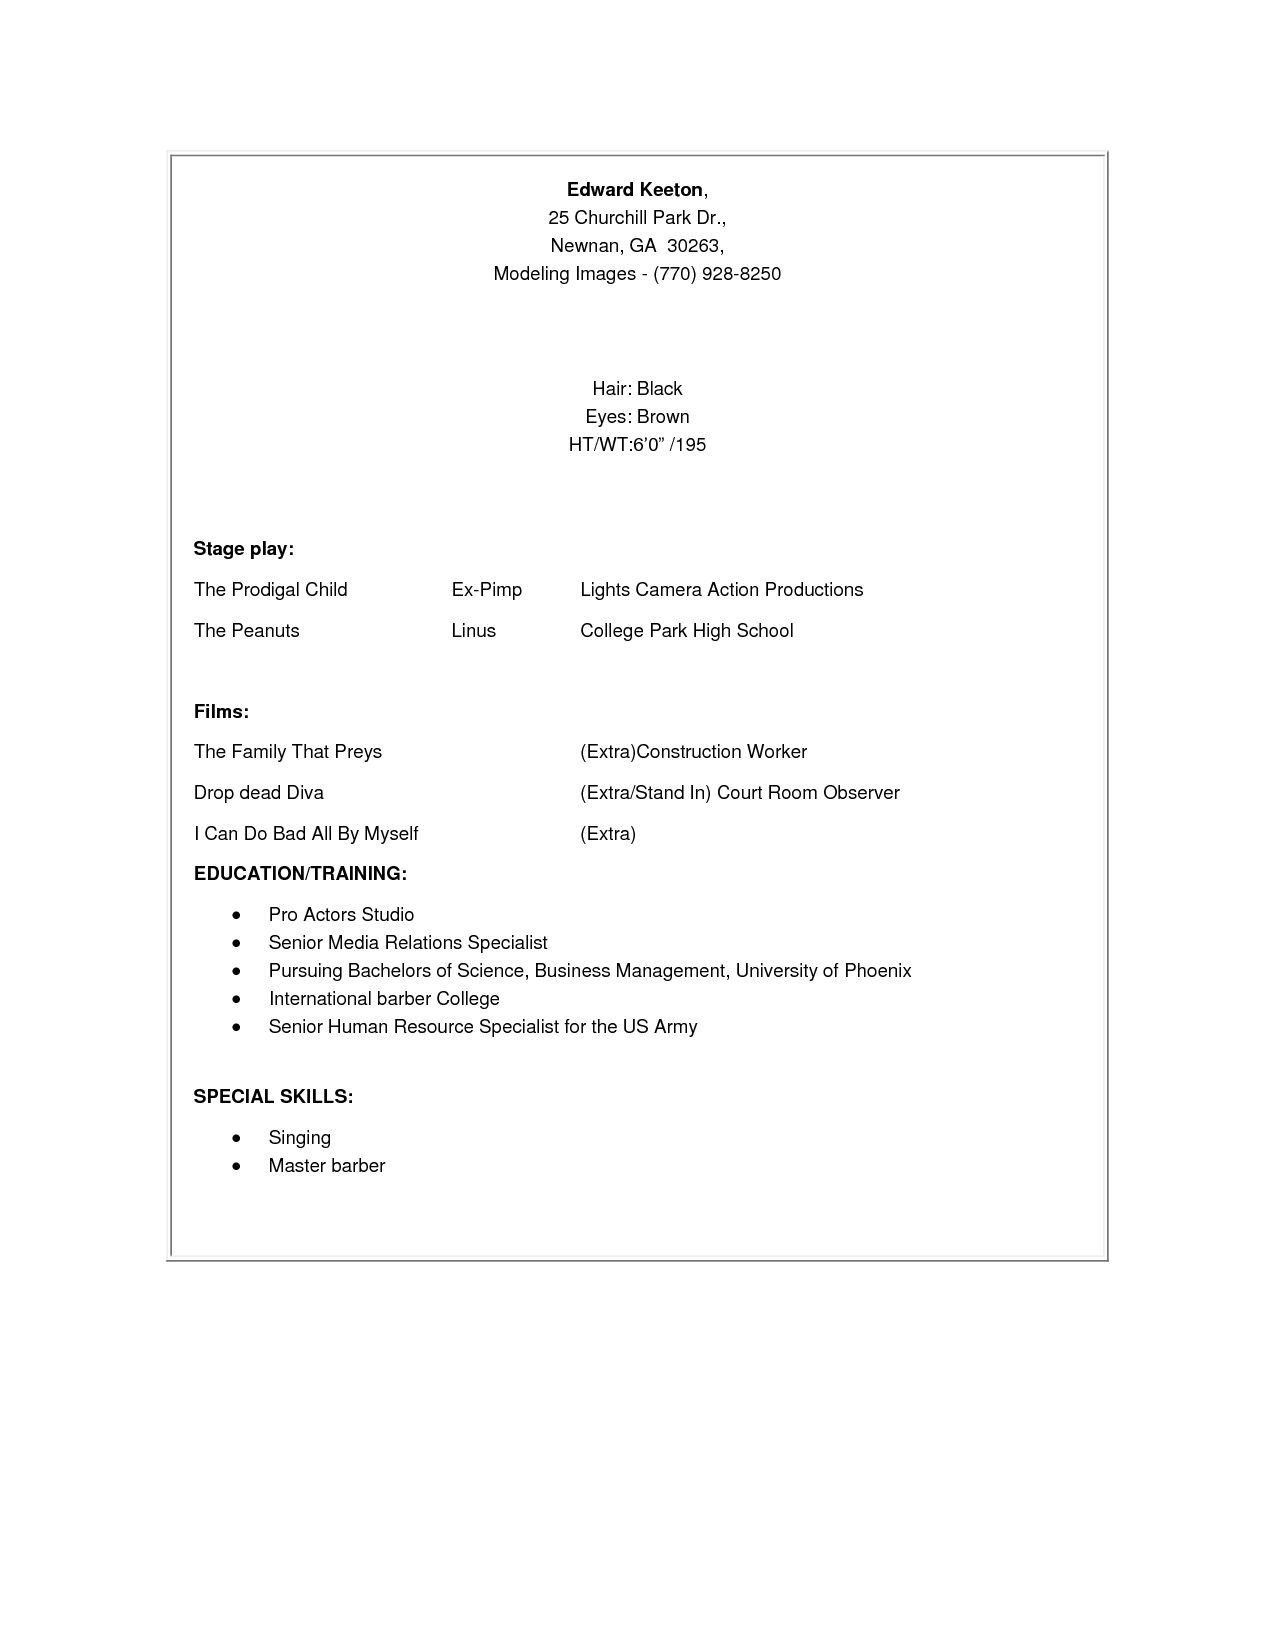 resume sample child acting template how pertaining model format cipanewsletter regarding